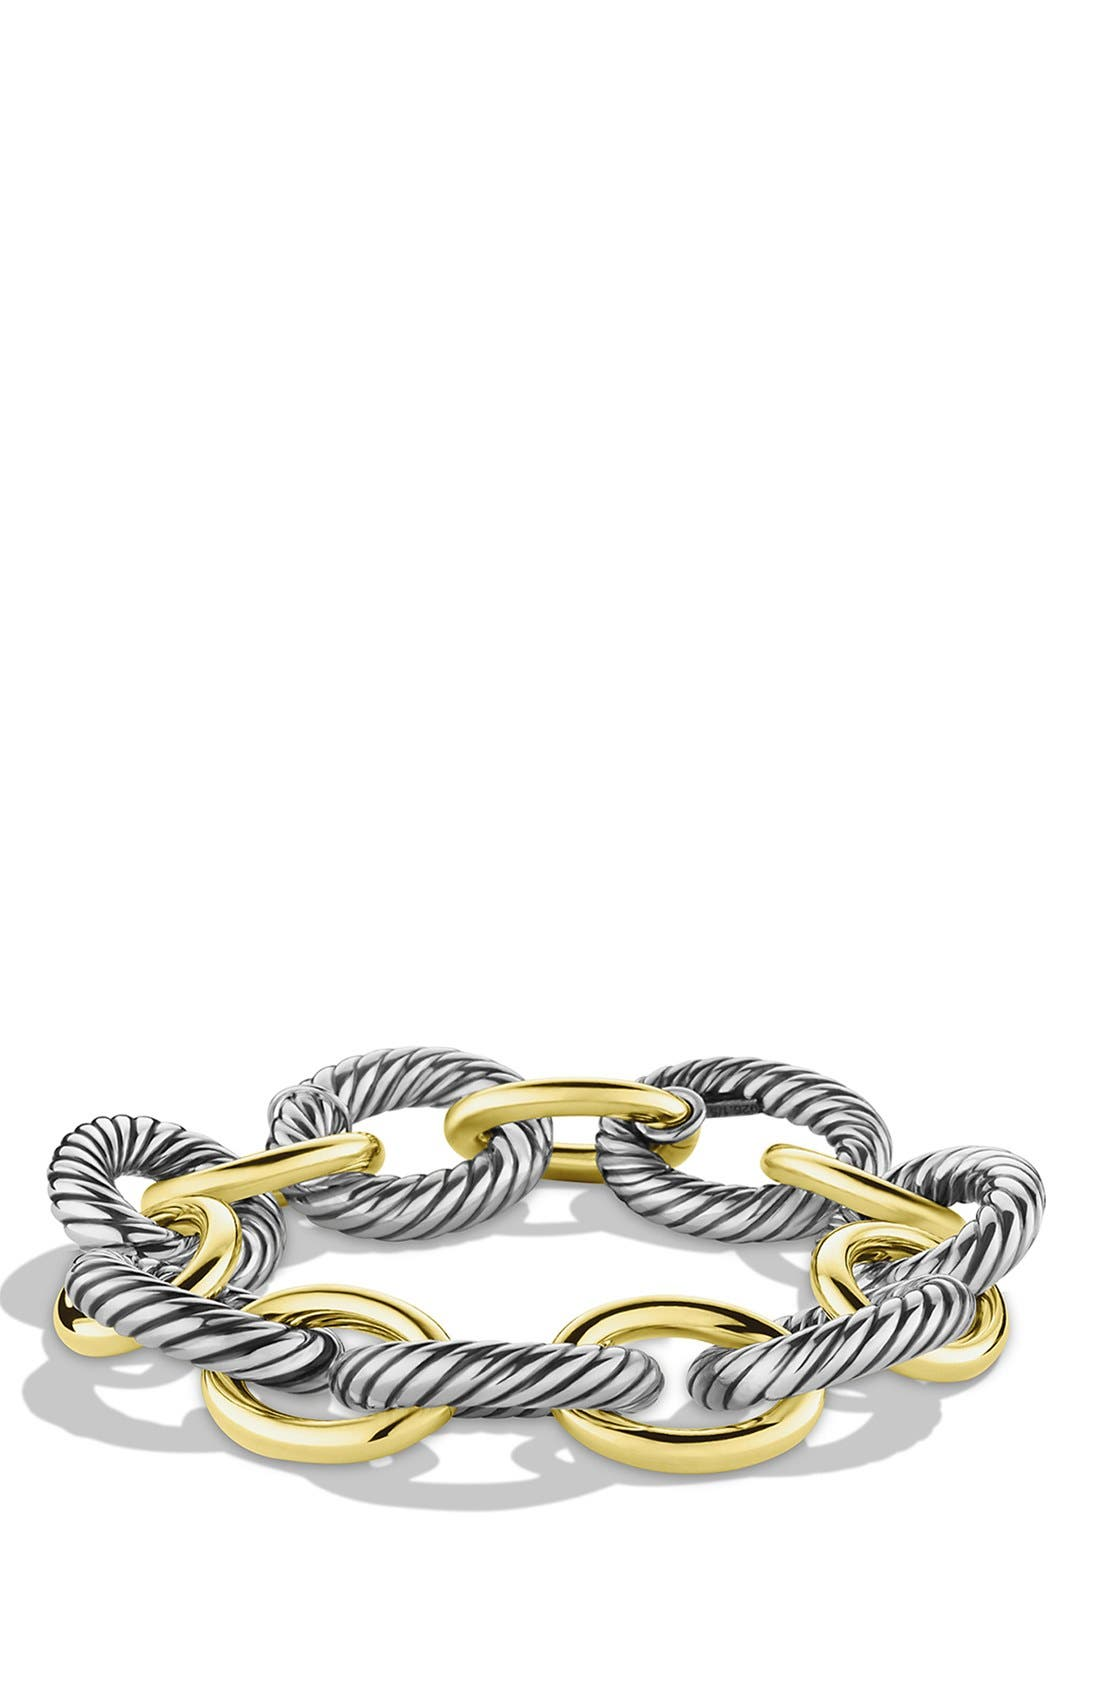 'Oval' Extra-Large Link Bracelet with Gold,                             Main thumbnail 1, color,                             TWO TONE